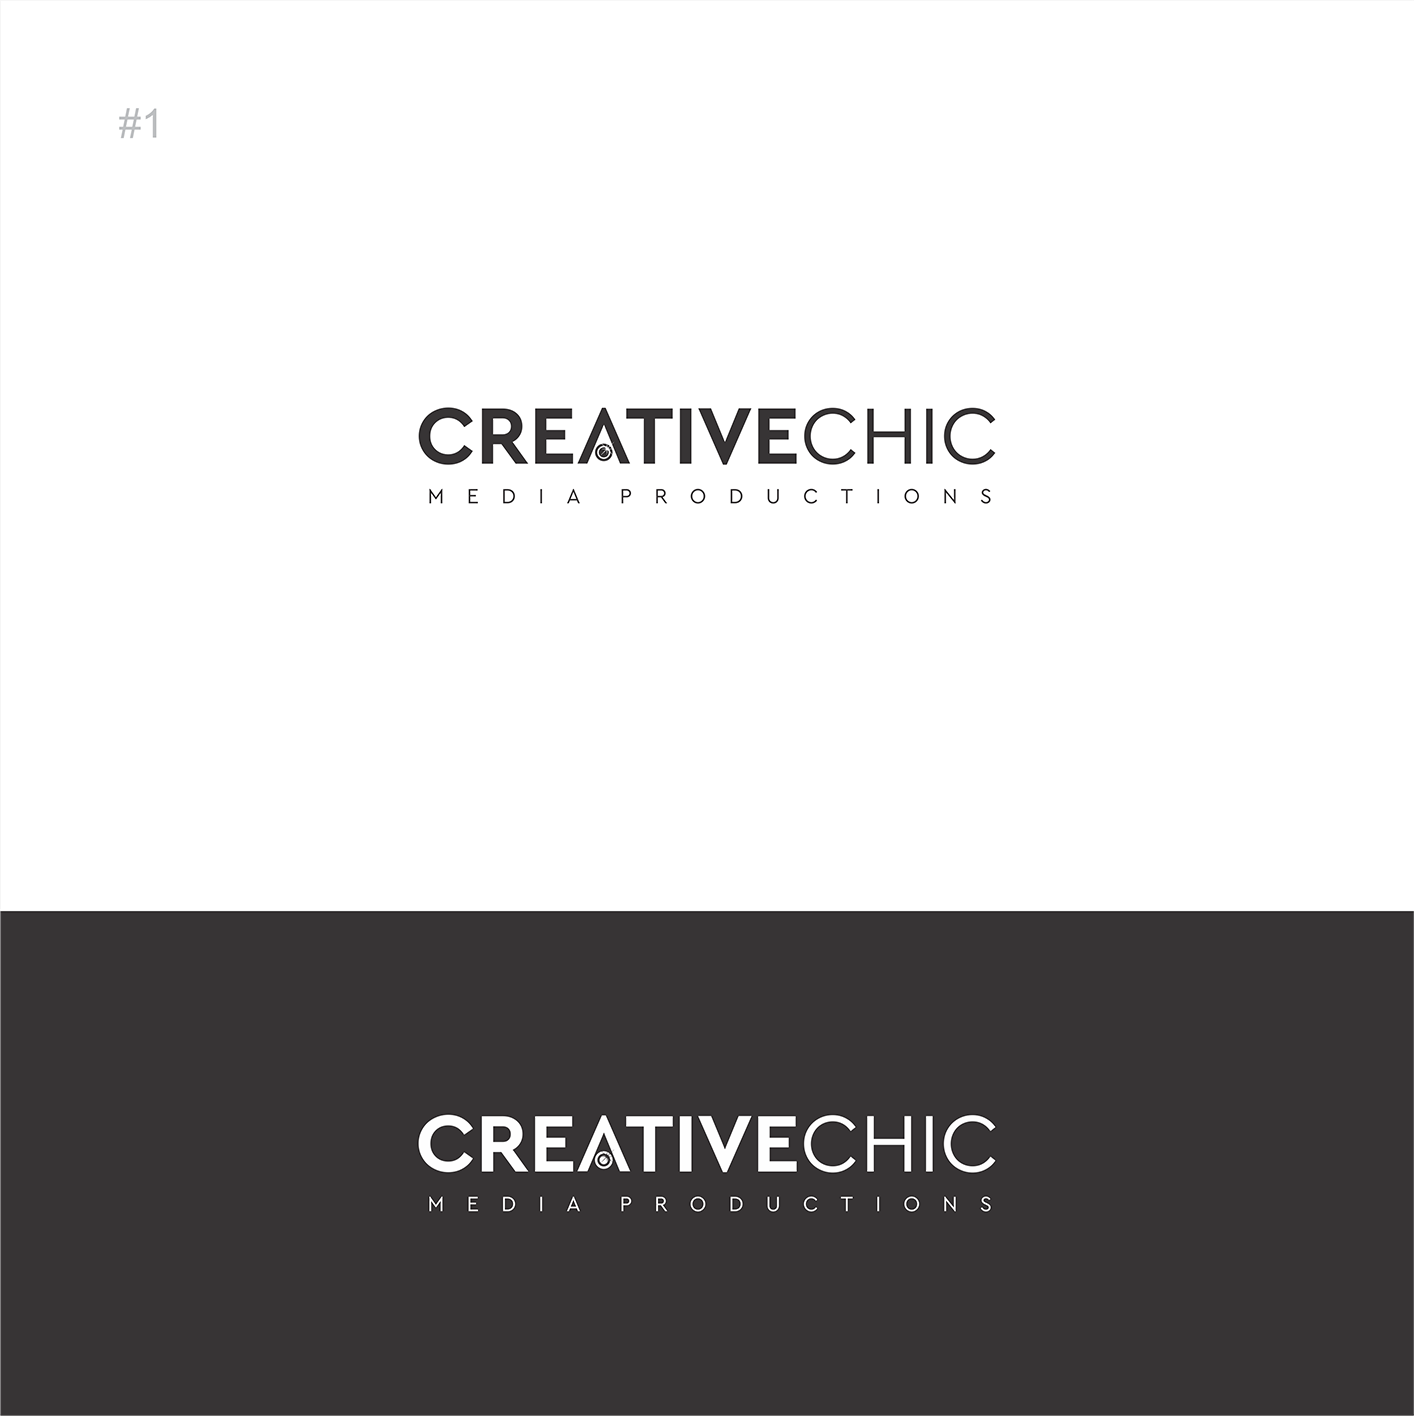 sophisticated cool logo needed for magazine publisher